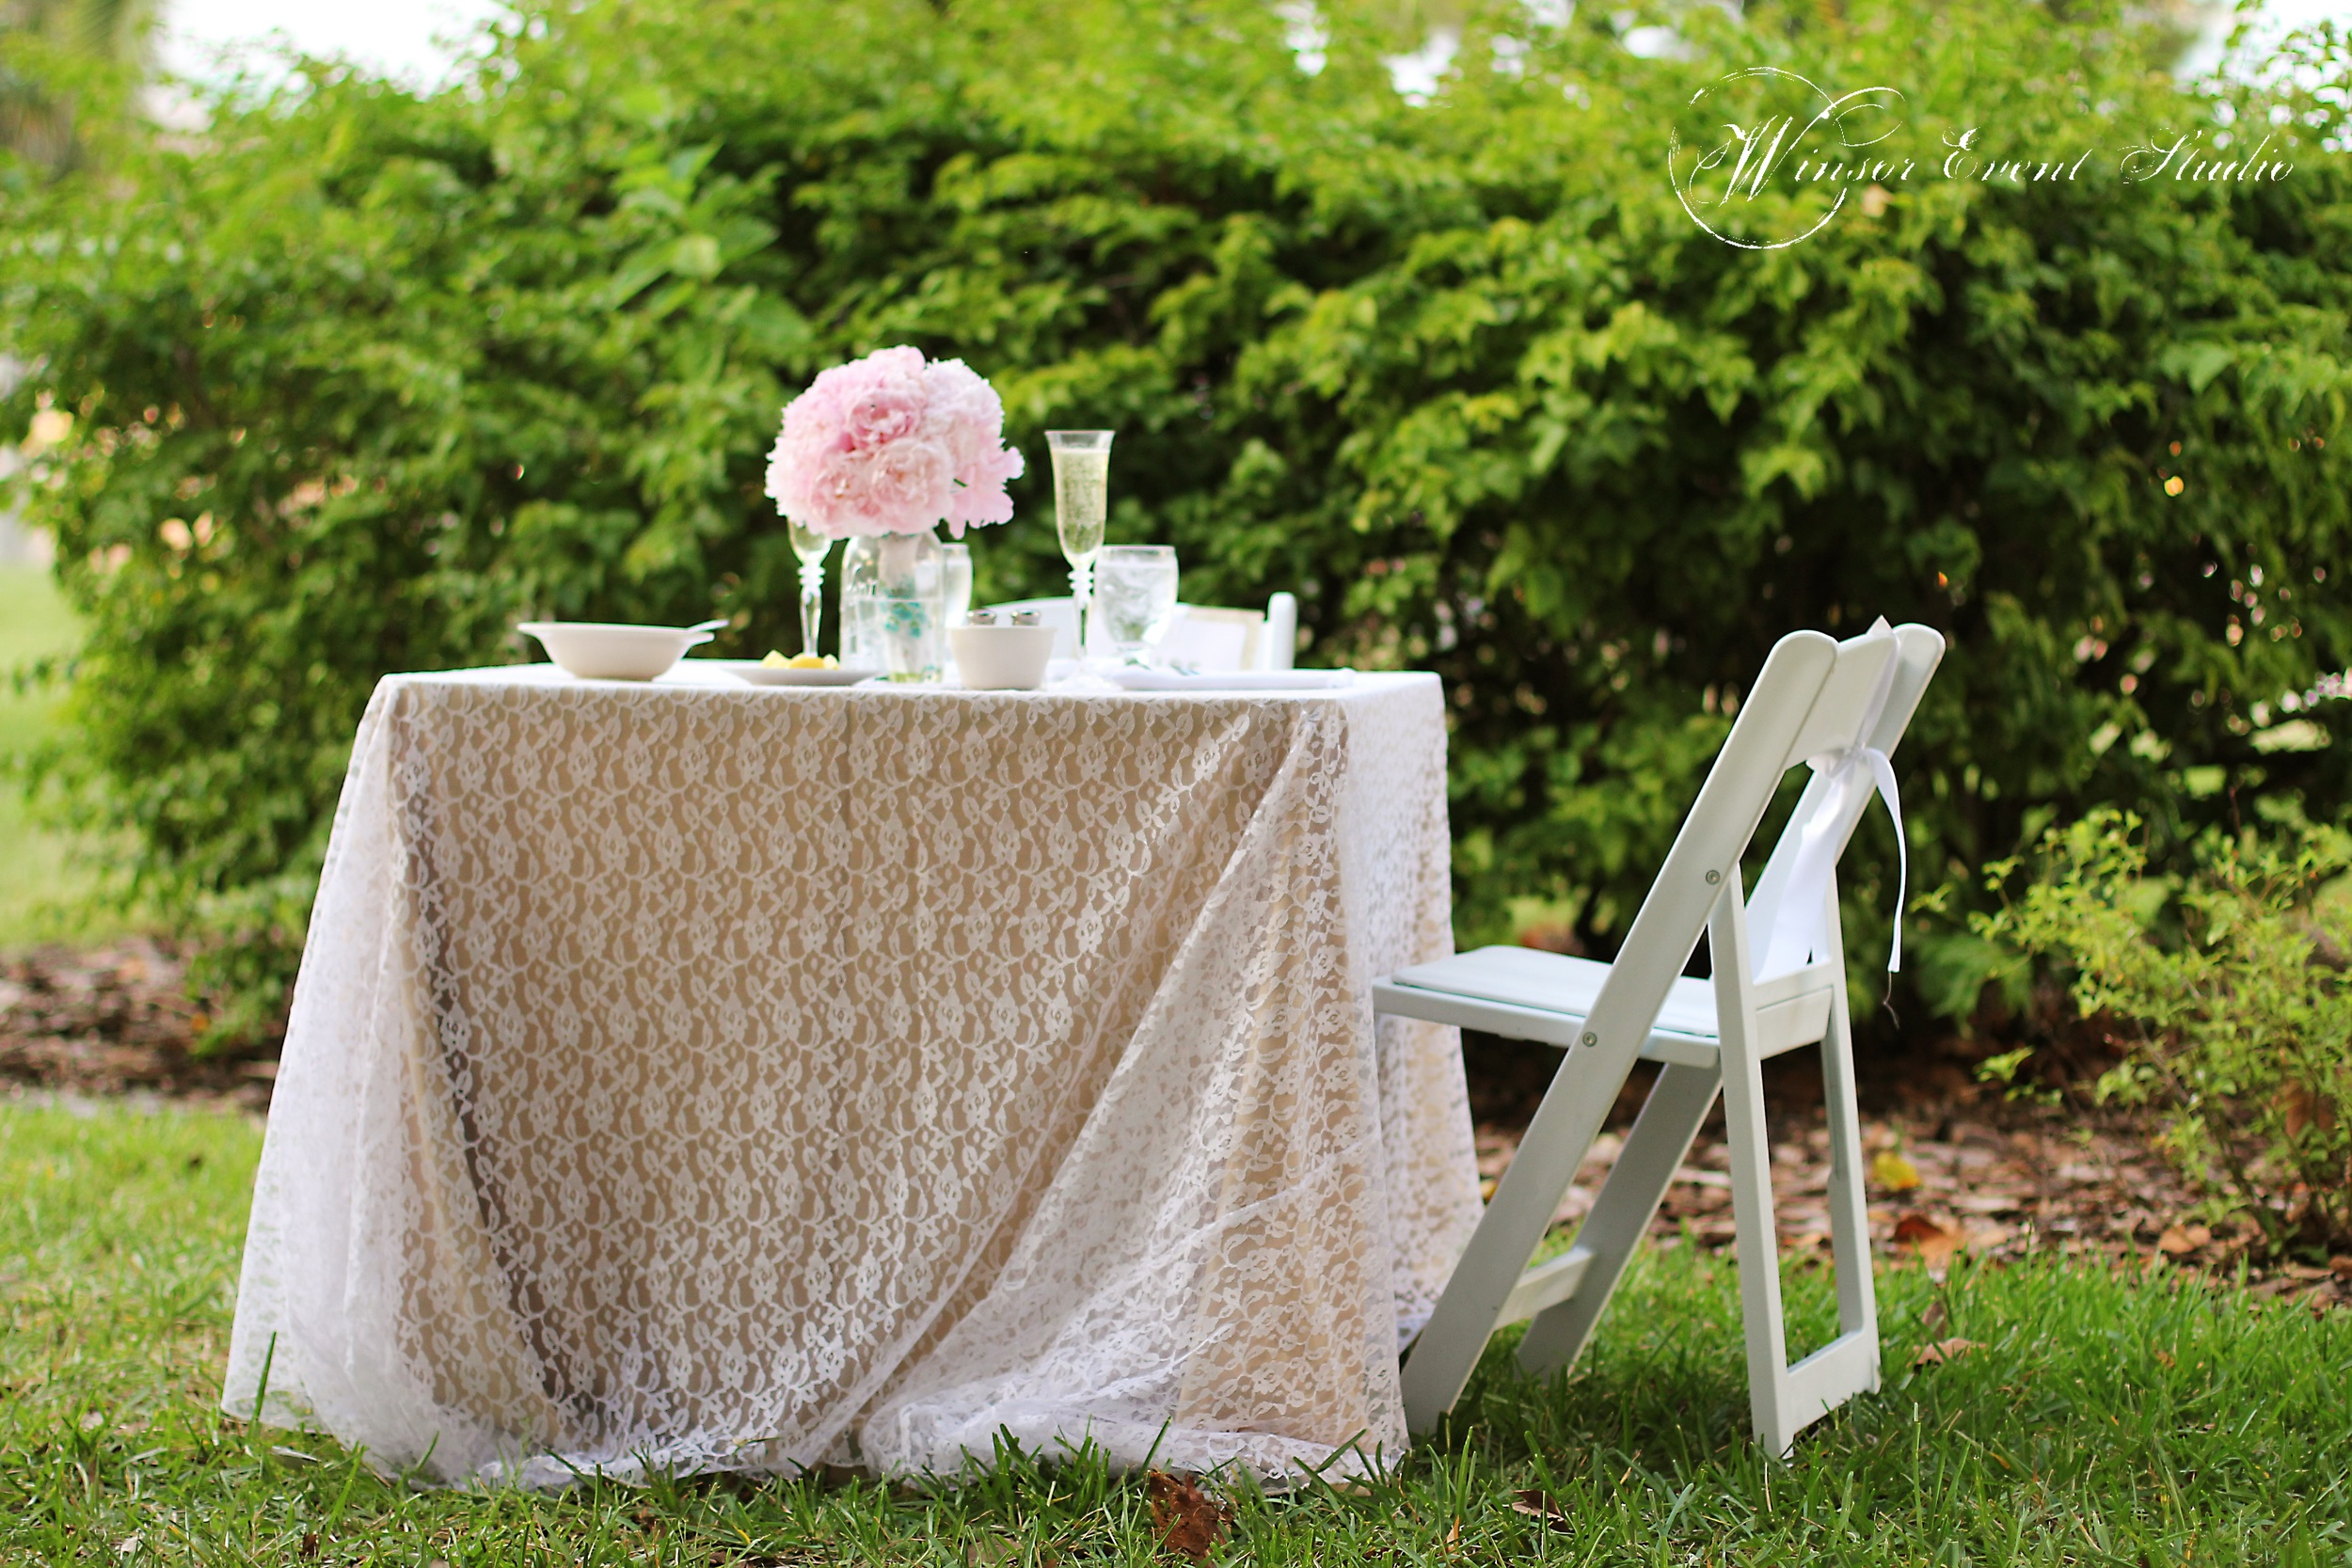 Tables were dressed with neutral linens and delicate lace overlays